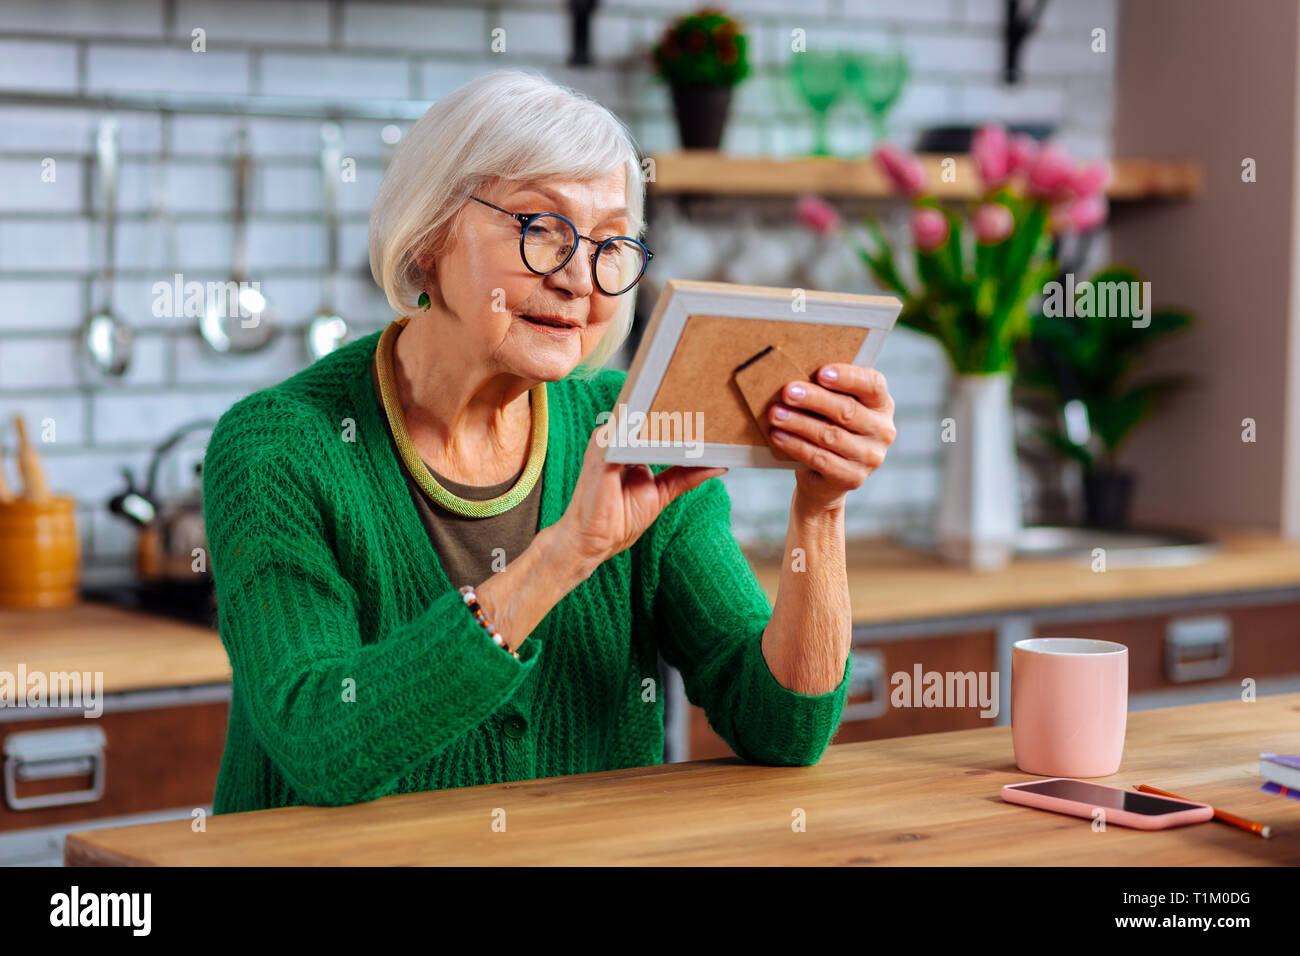 Aged woman tenderly palming photo frame while sitting at table - Stock Image